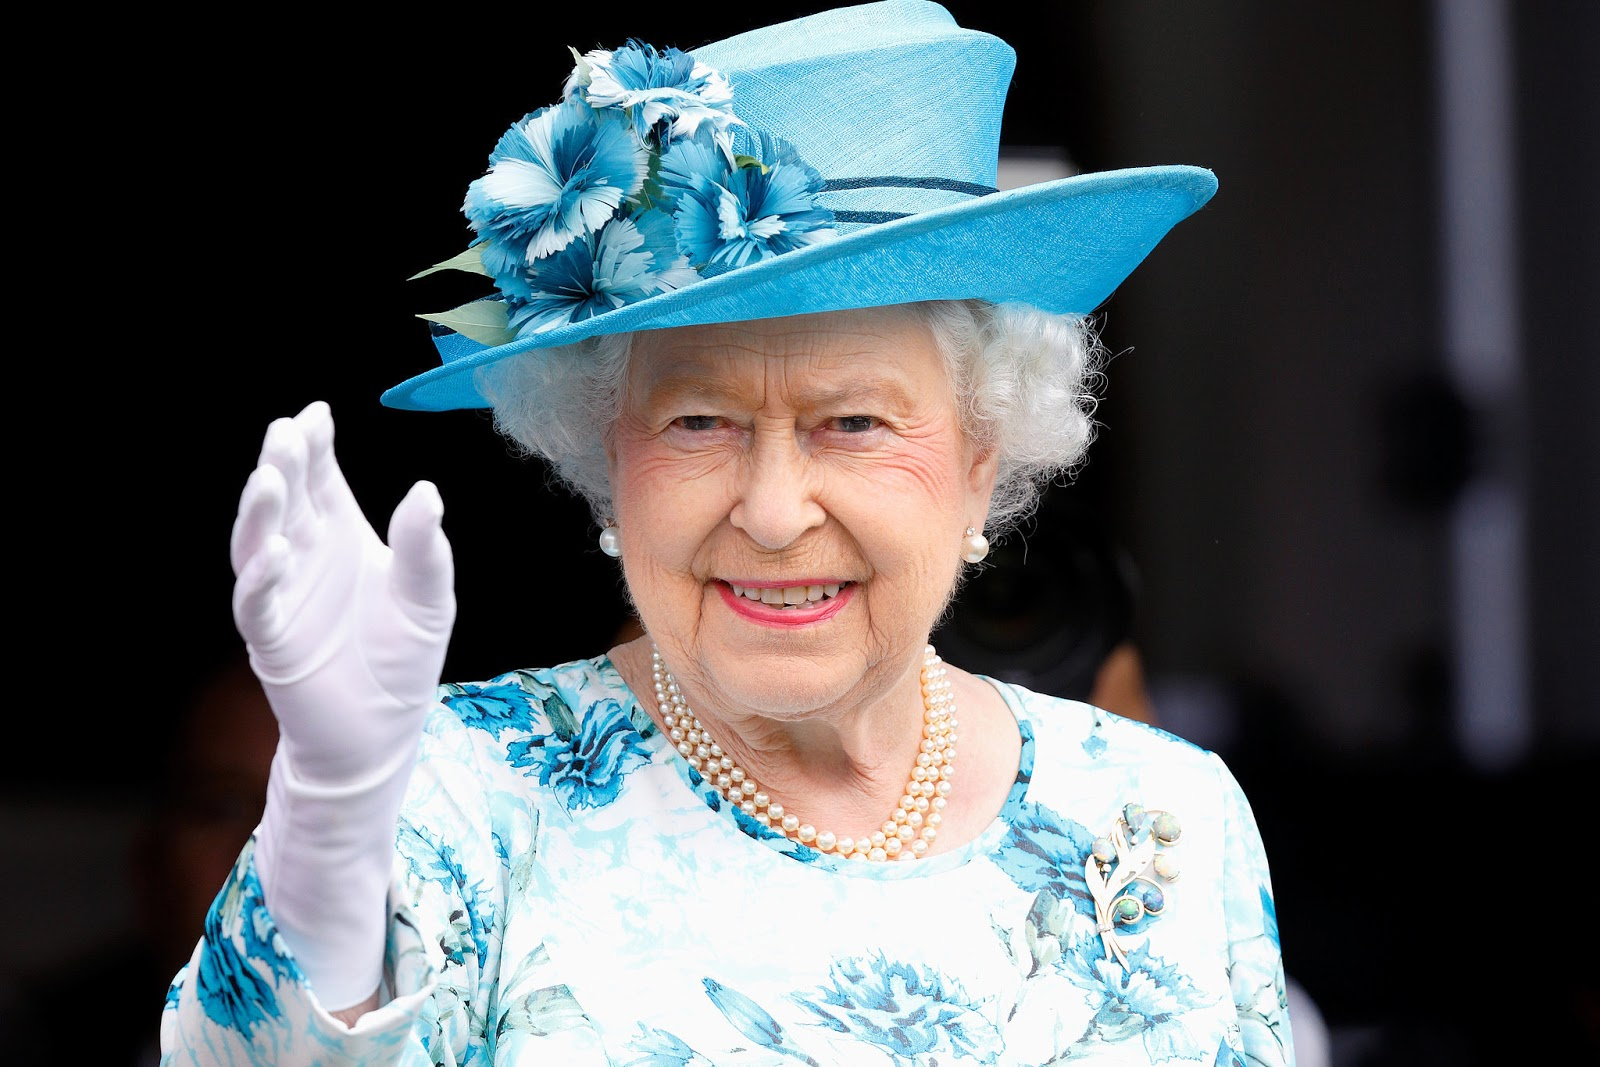 Queen Elizabeth Ii Dead This Is Just Death Hoax For